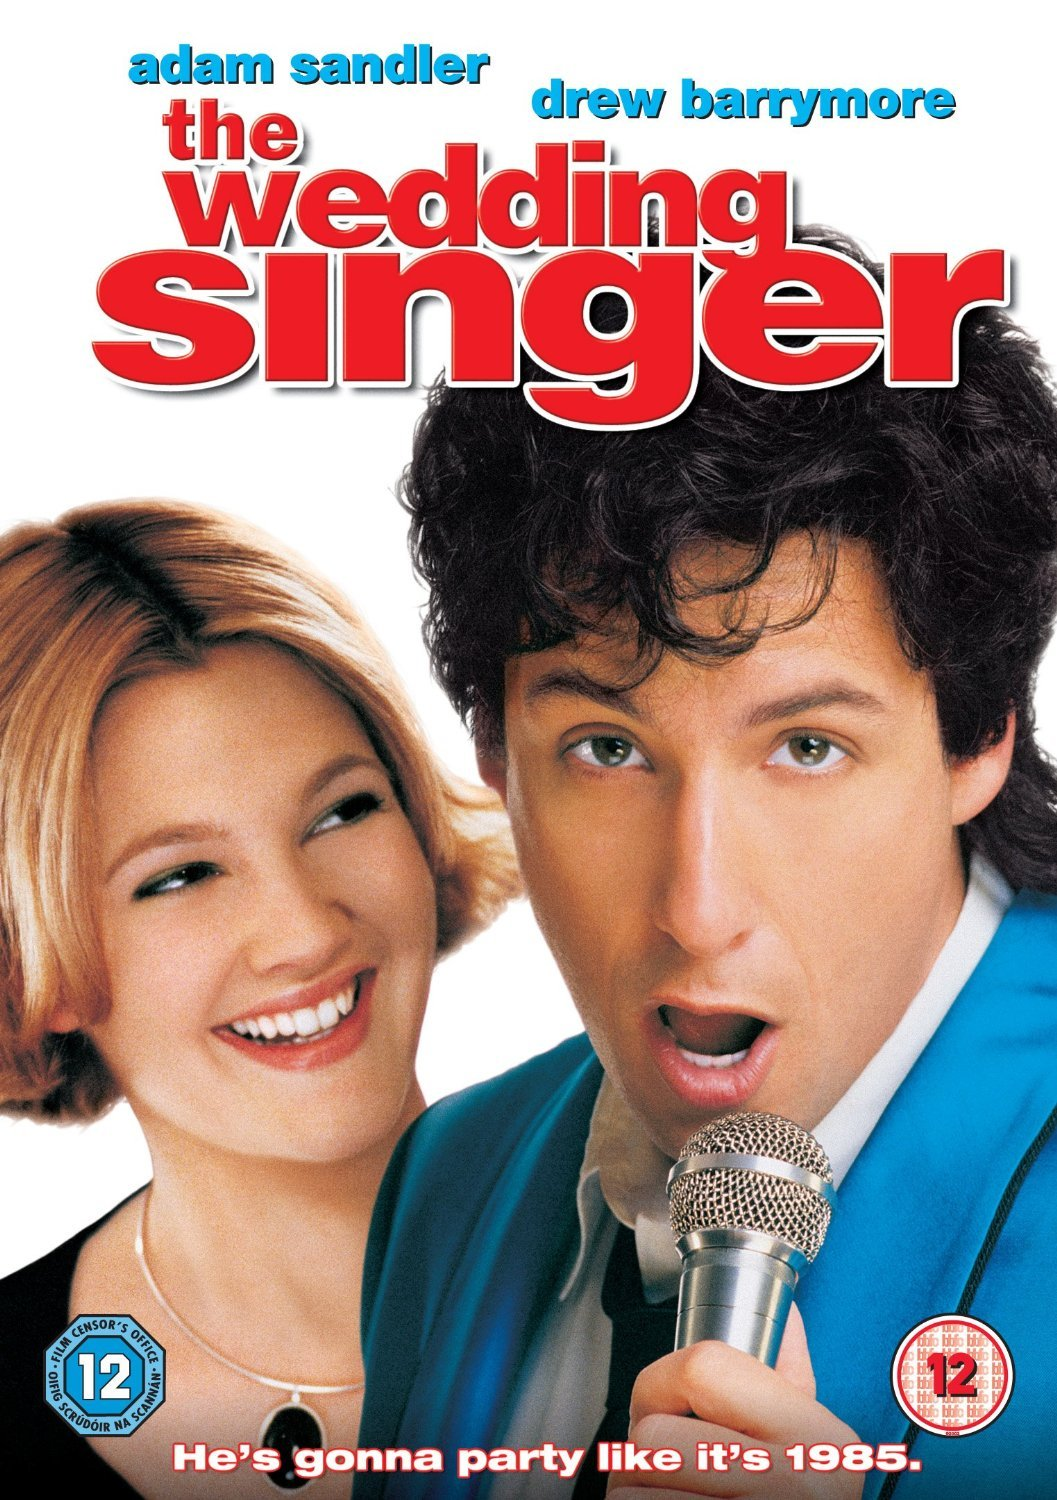 the wedding singer, movie, film, romantic comedy, julia sullivan, glenn gulia, ddrew barrymore, adam sandler